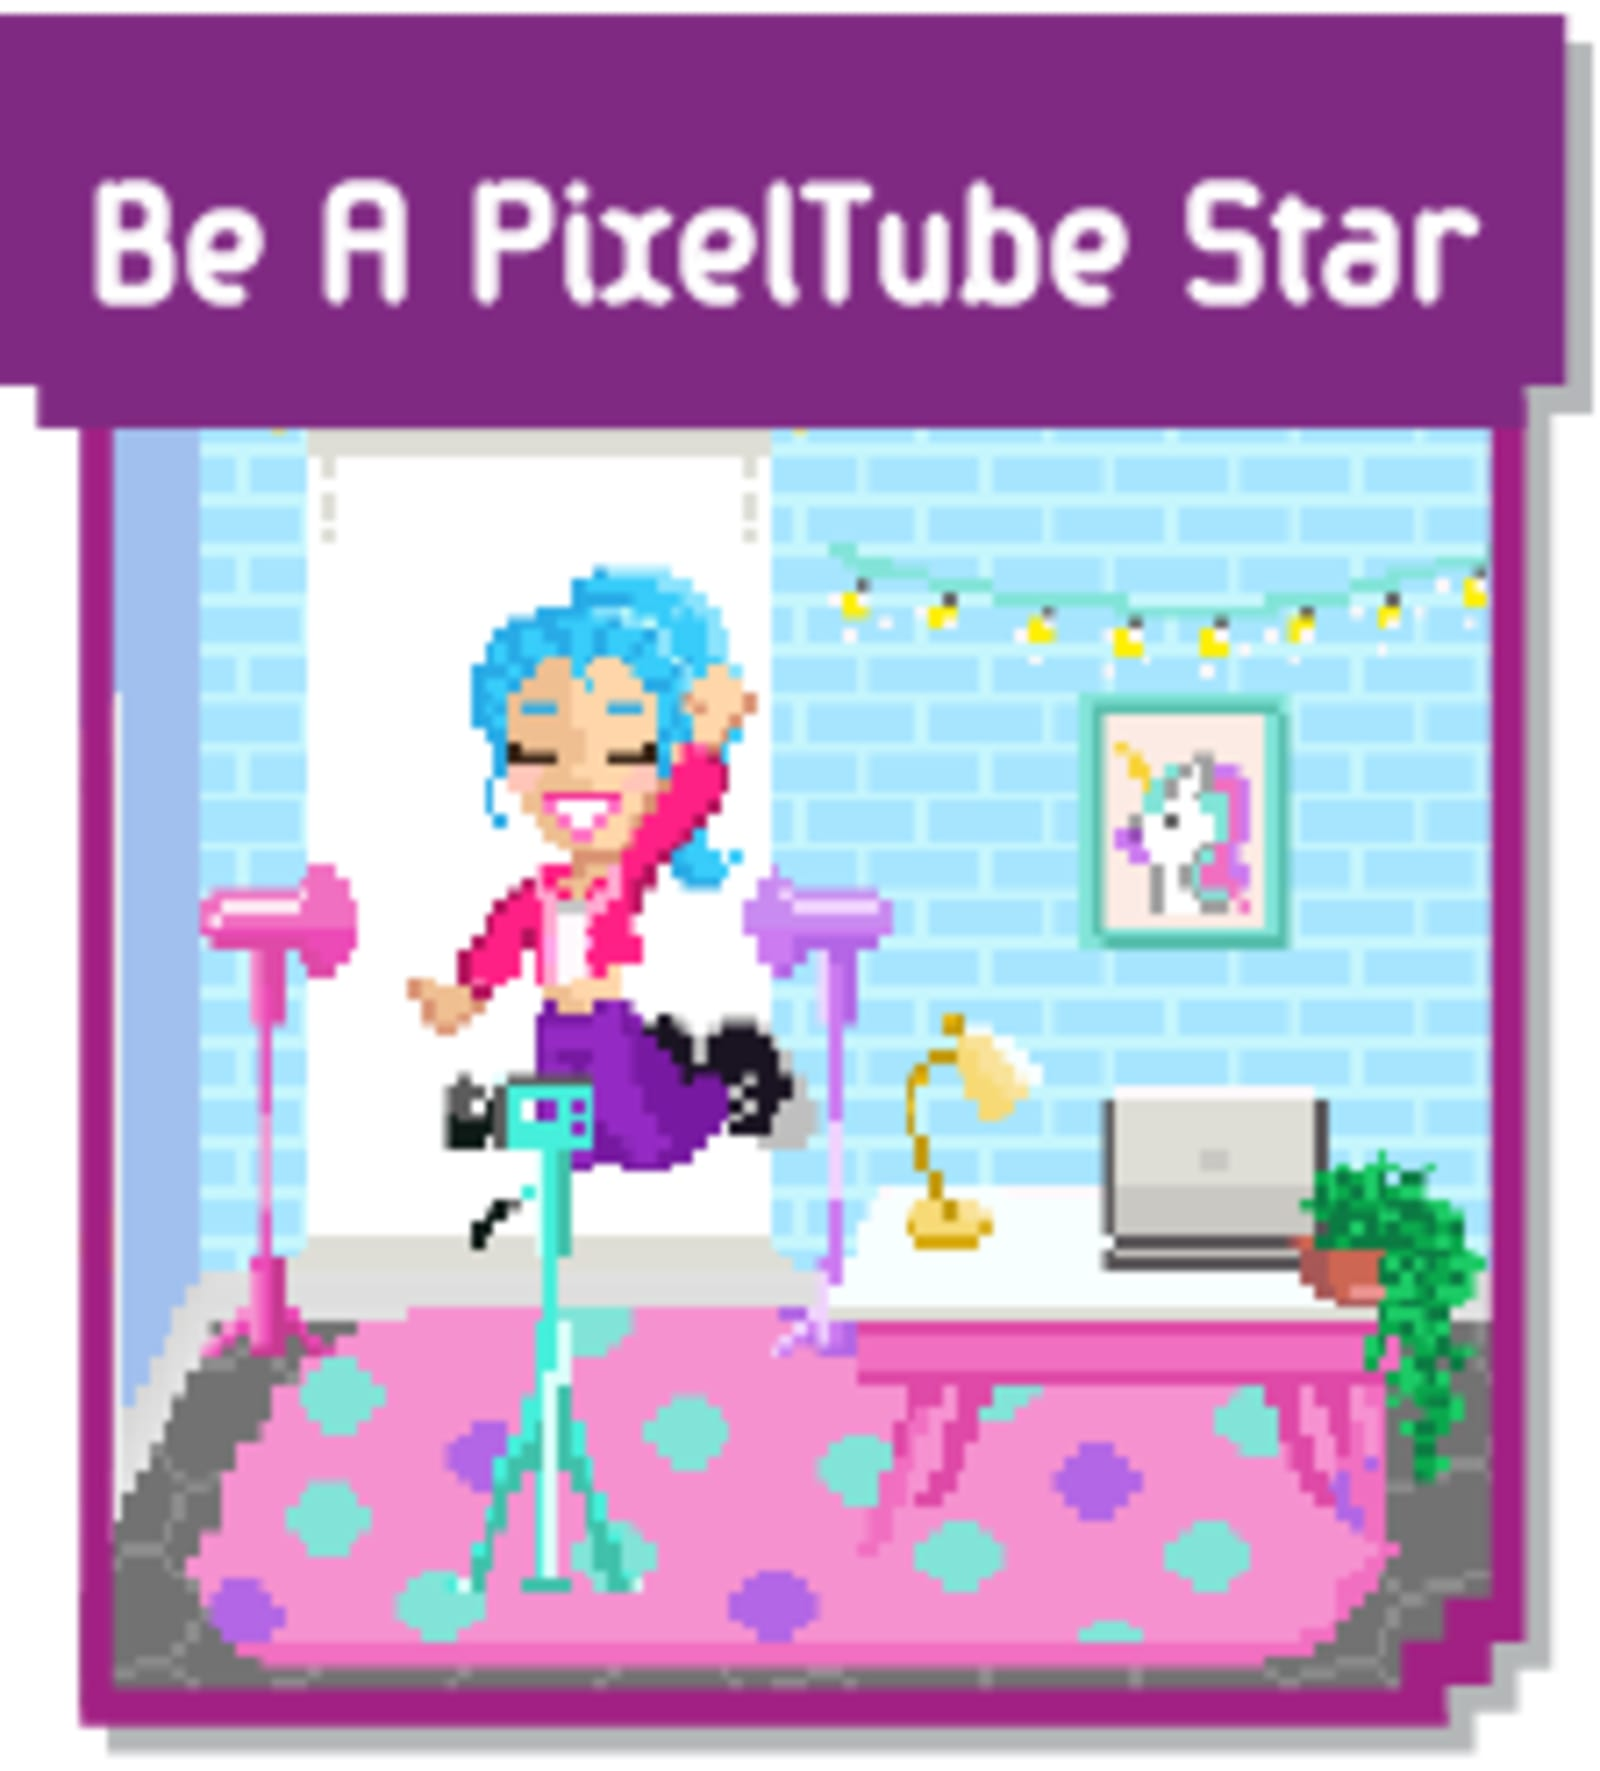 Be a PixelTube Star